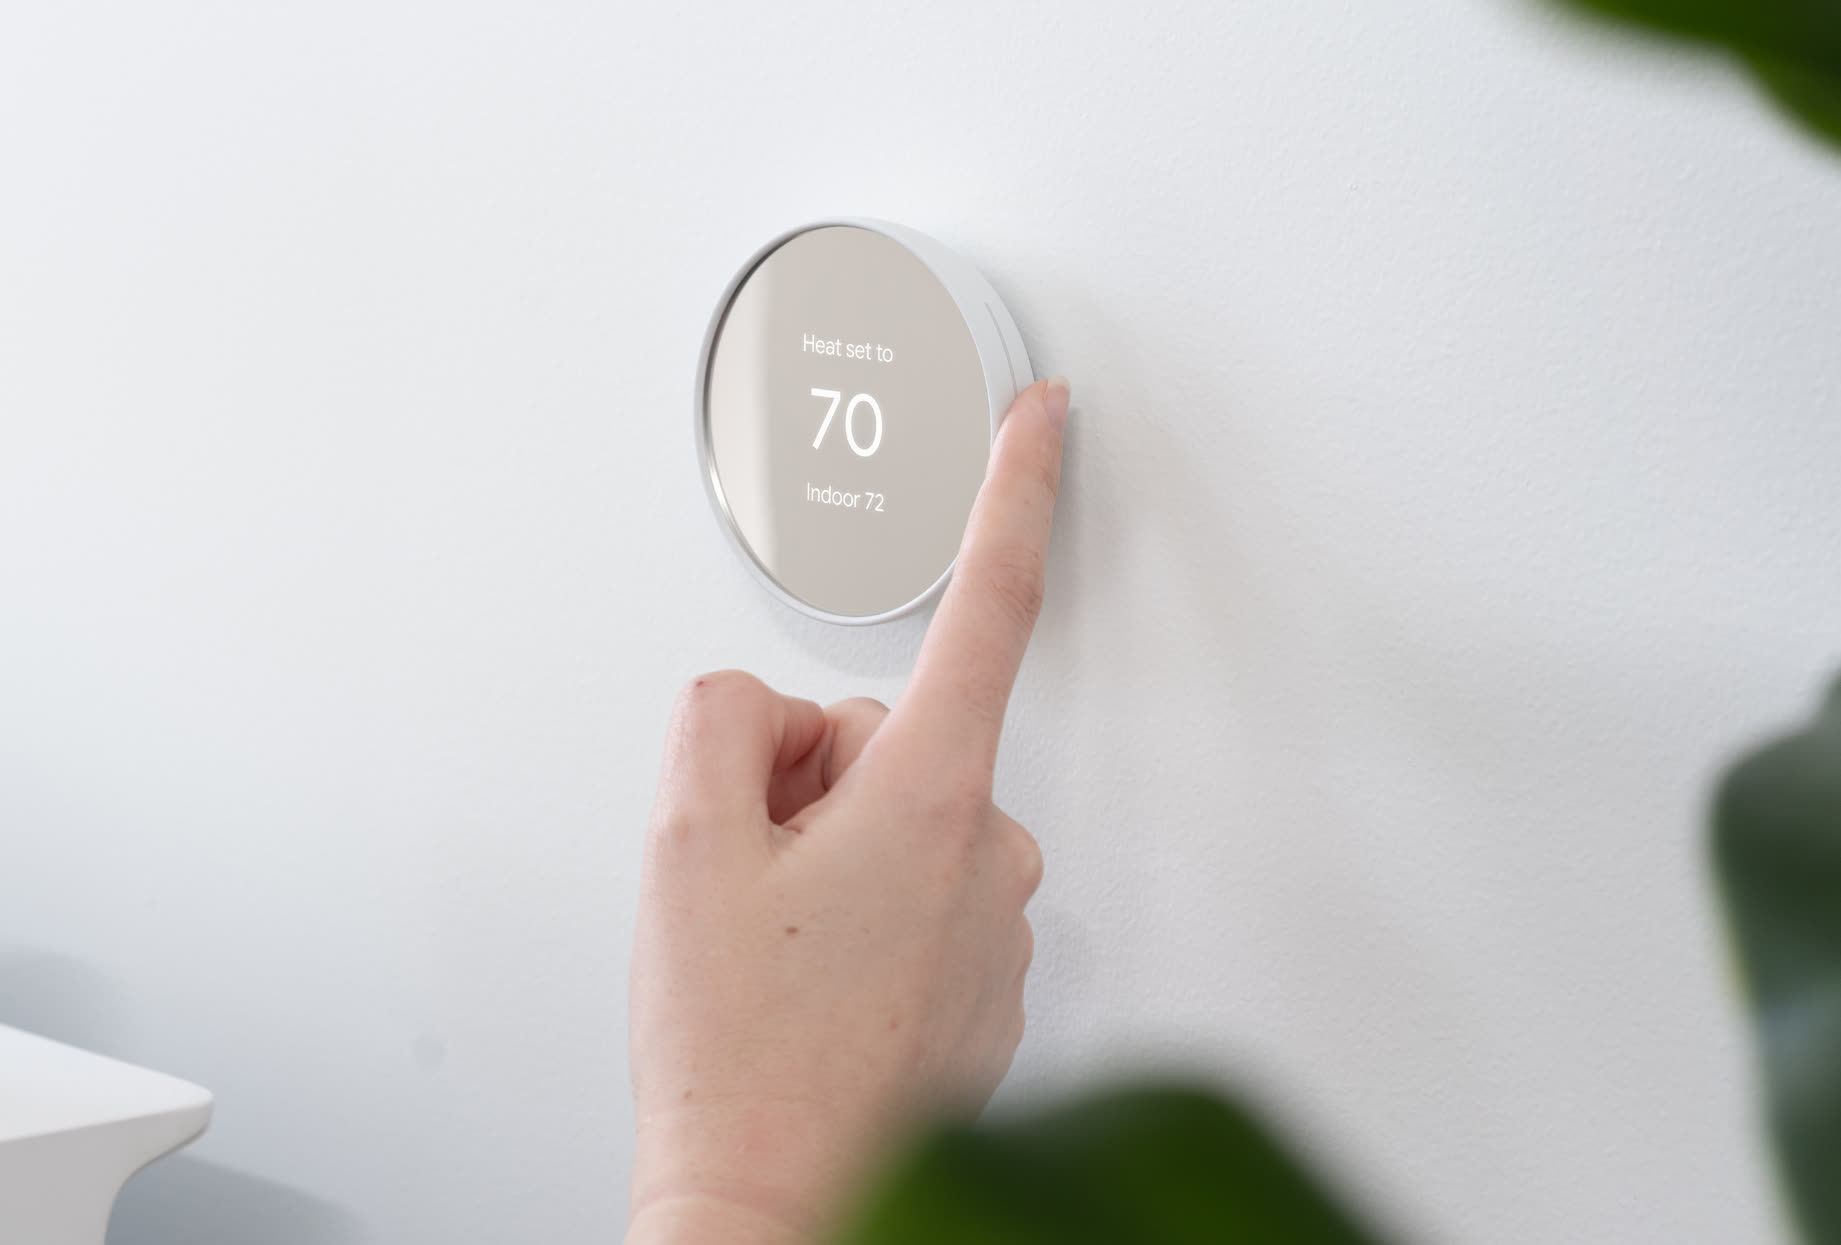 Google's Nest Thermostat drops to all-time low price in 1-day Amazon sale